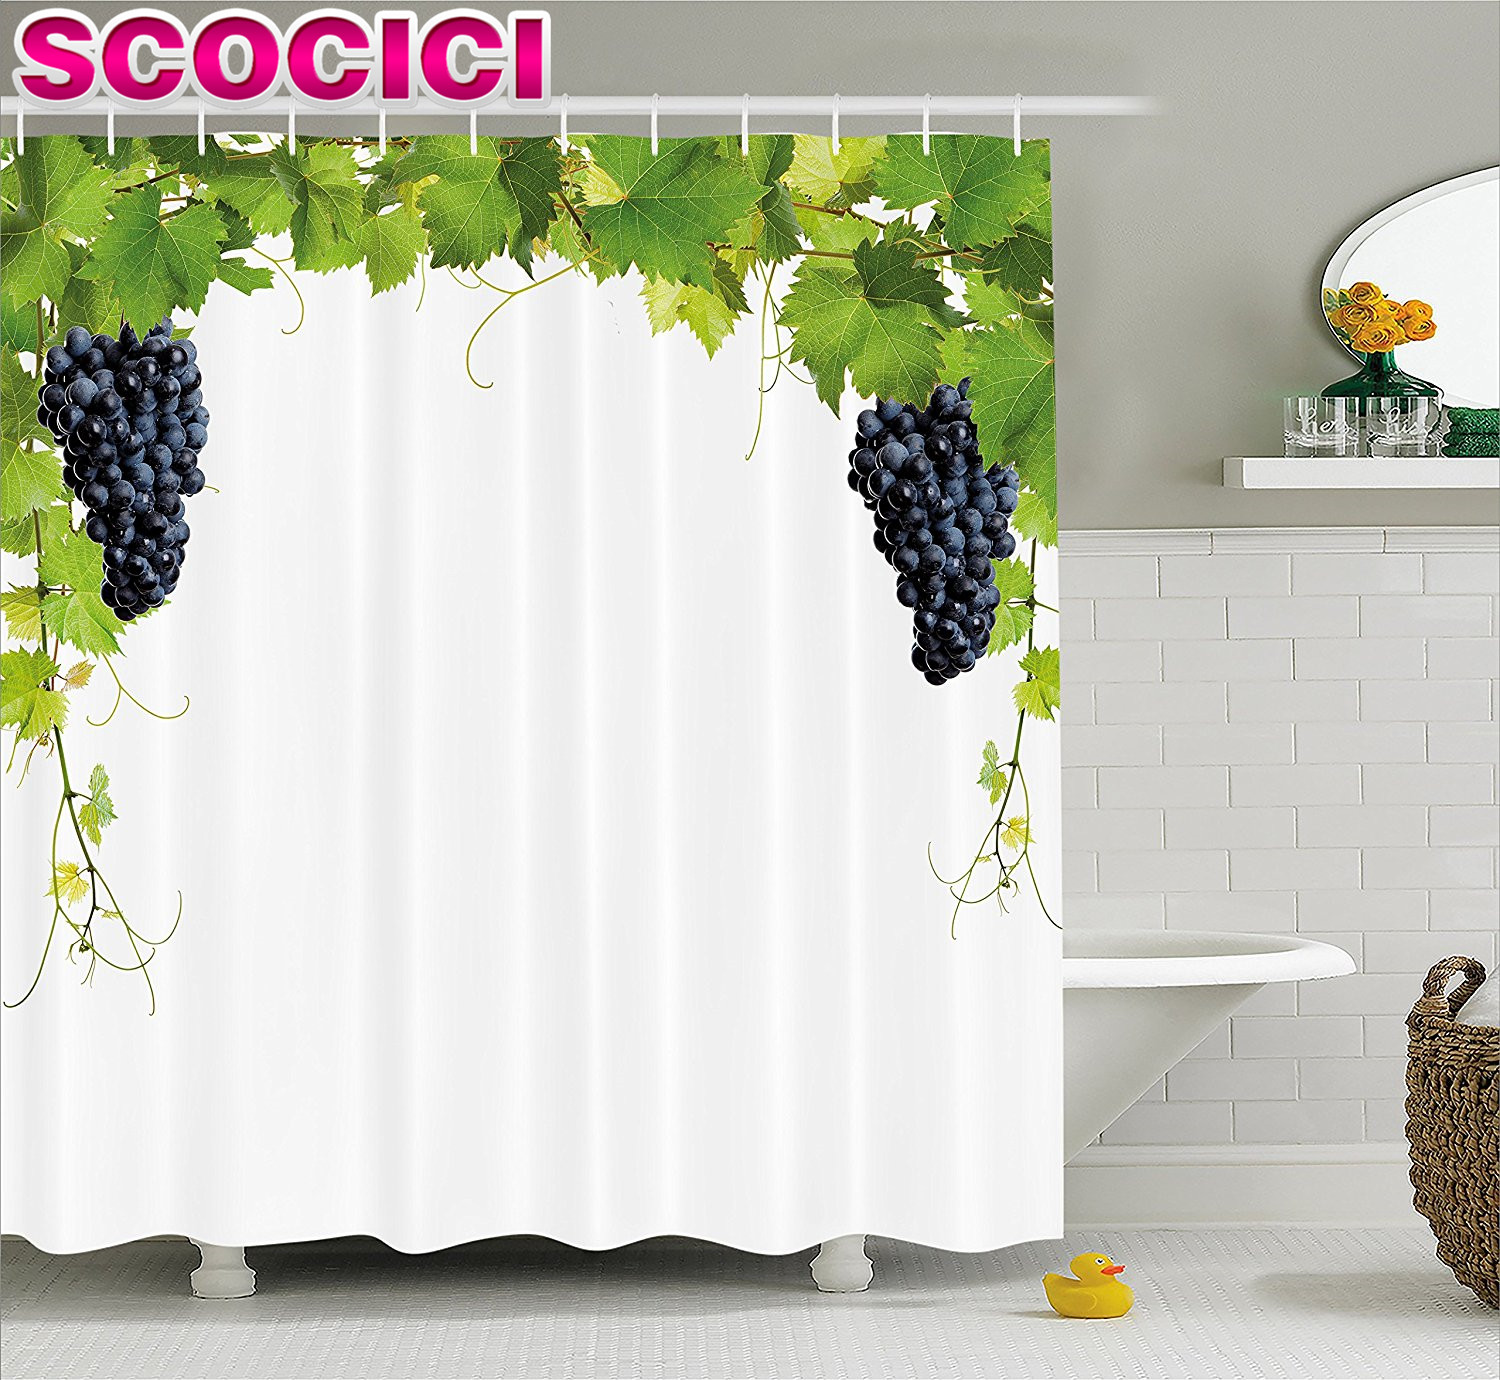 Wine Decor Shower Curtain Set Bottle And Bunch Of Gs On Wooden Table Background Romantic Italian Dinner Theme Bathroom Green Brown